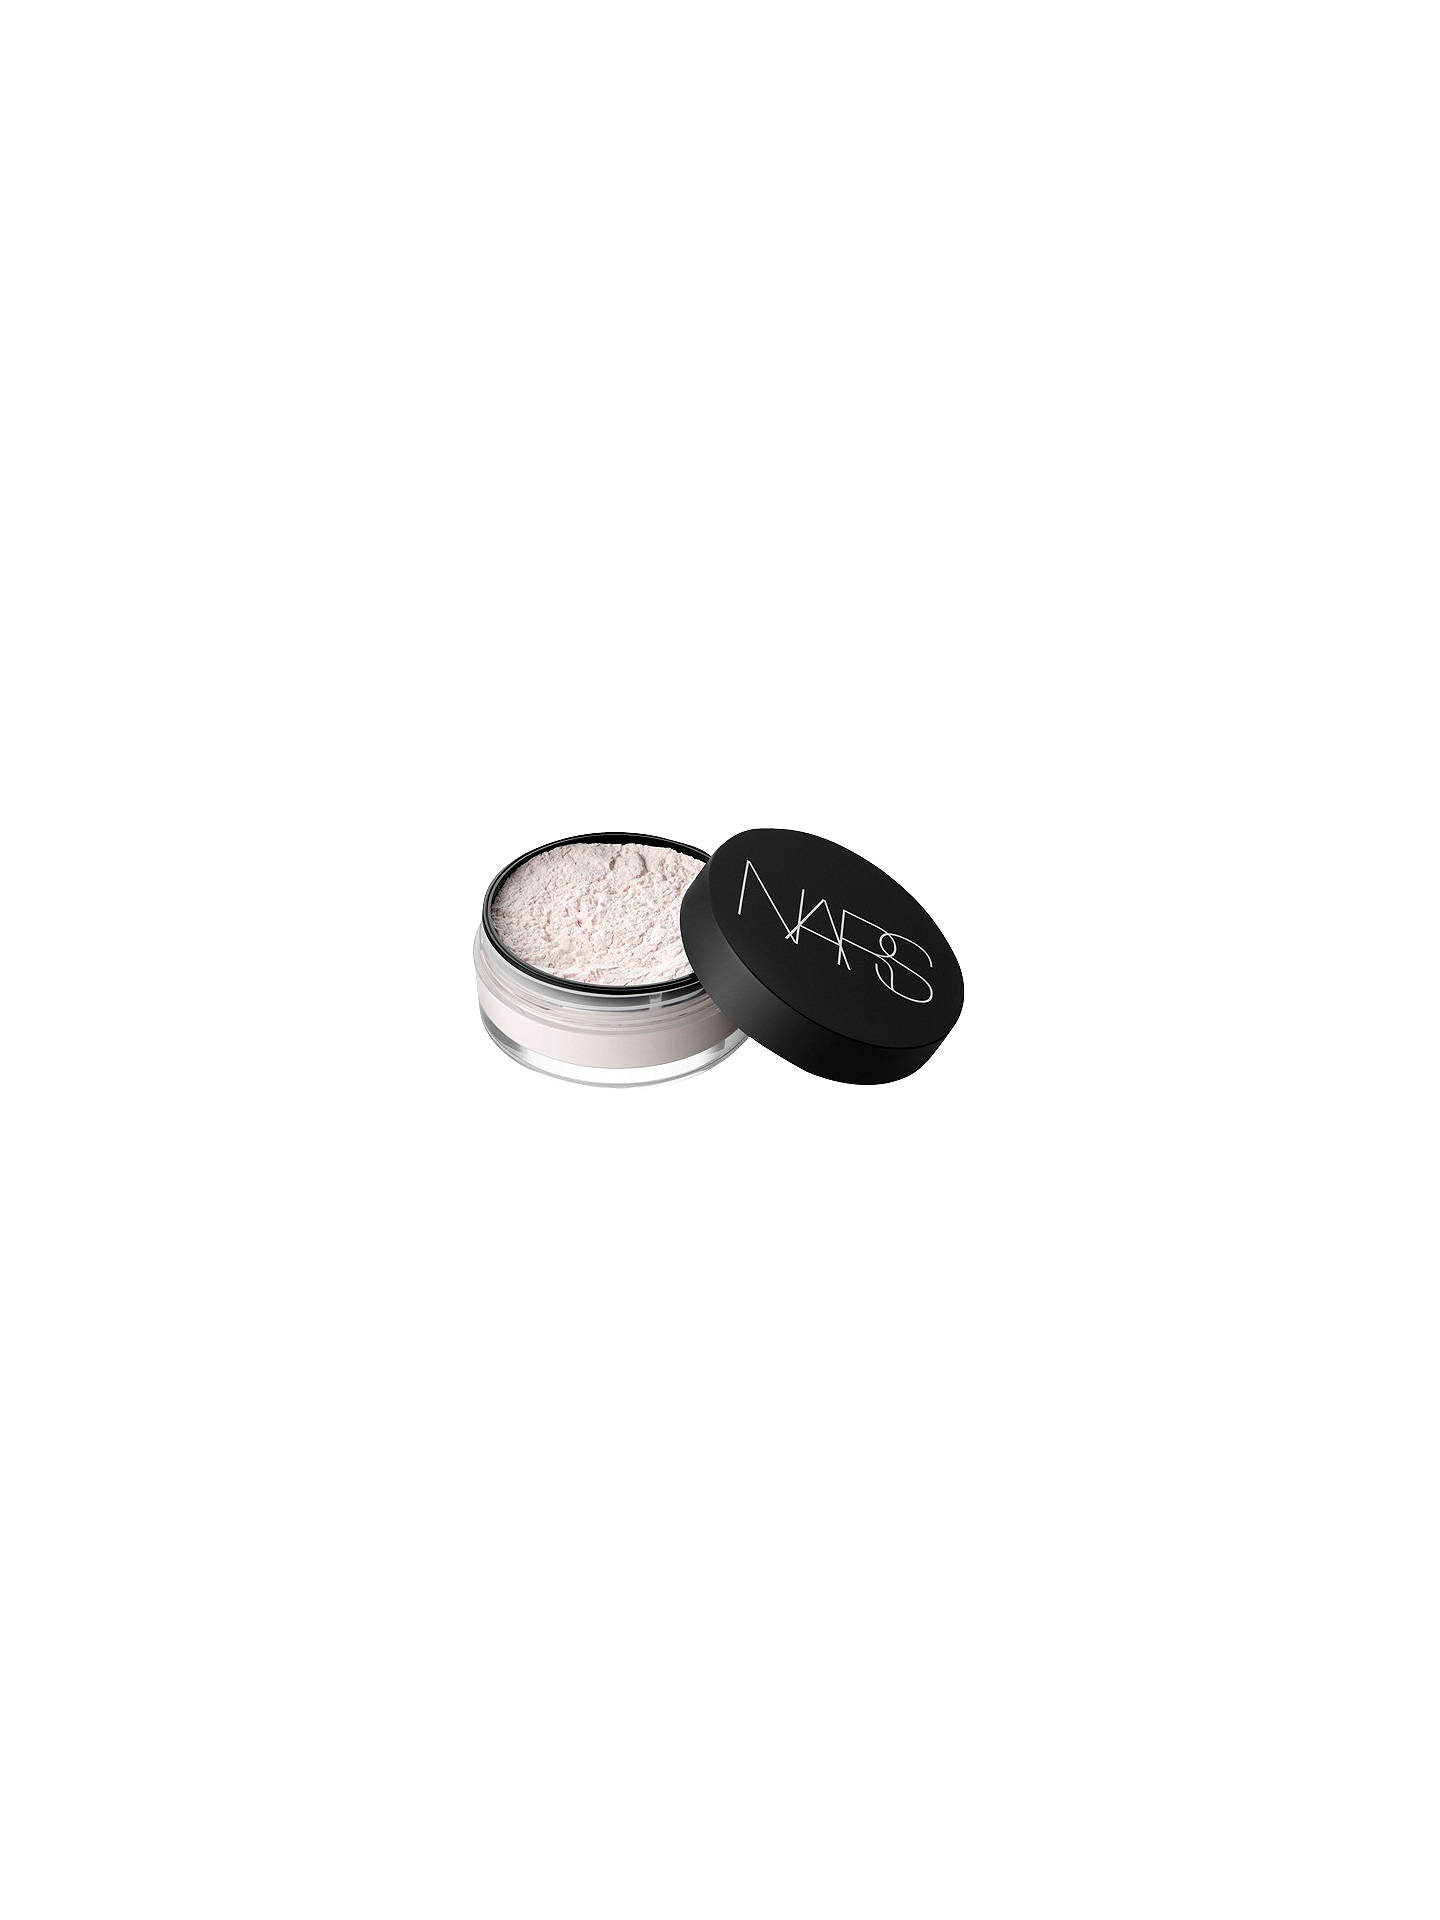 Buy NARS Light Reflecting Loose Setting Powder, 10g Online at johnlewis.com